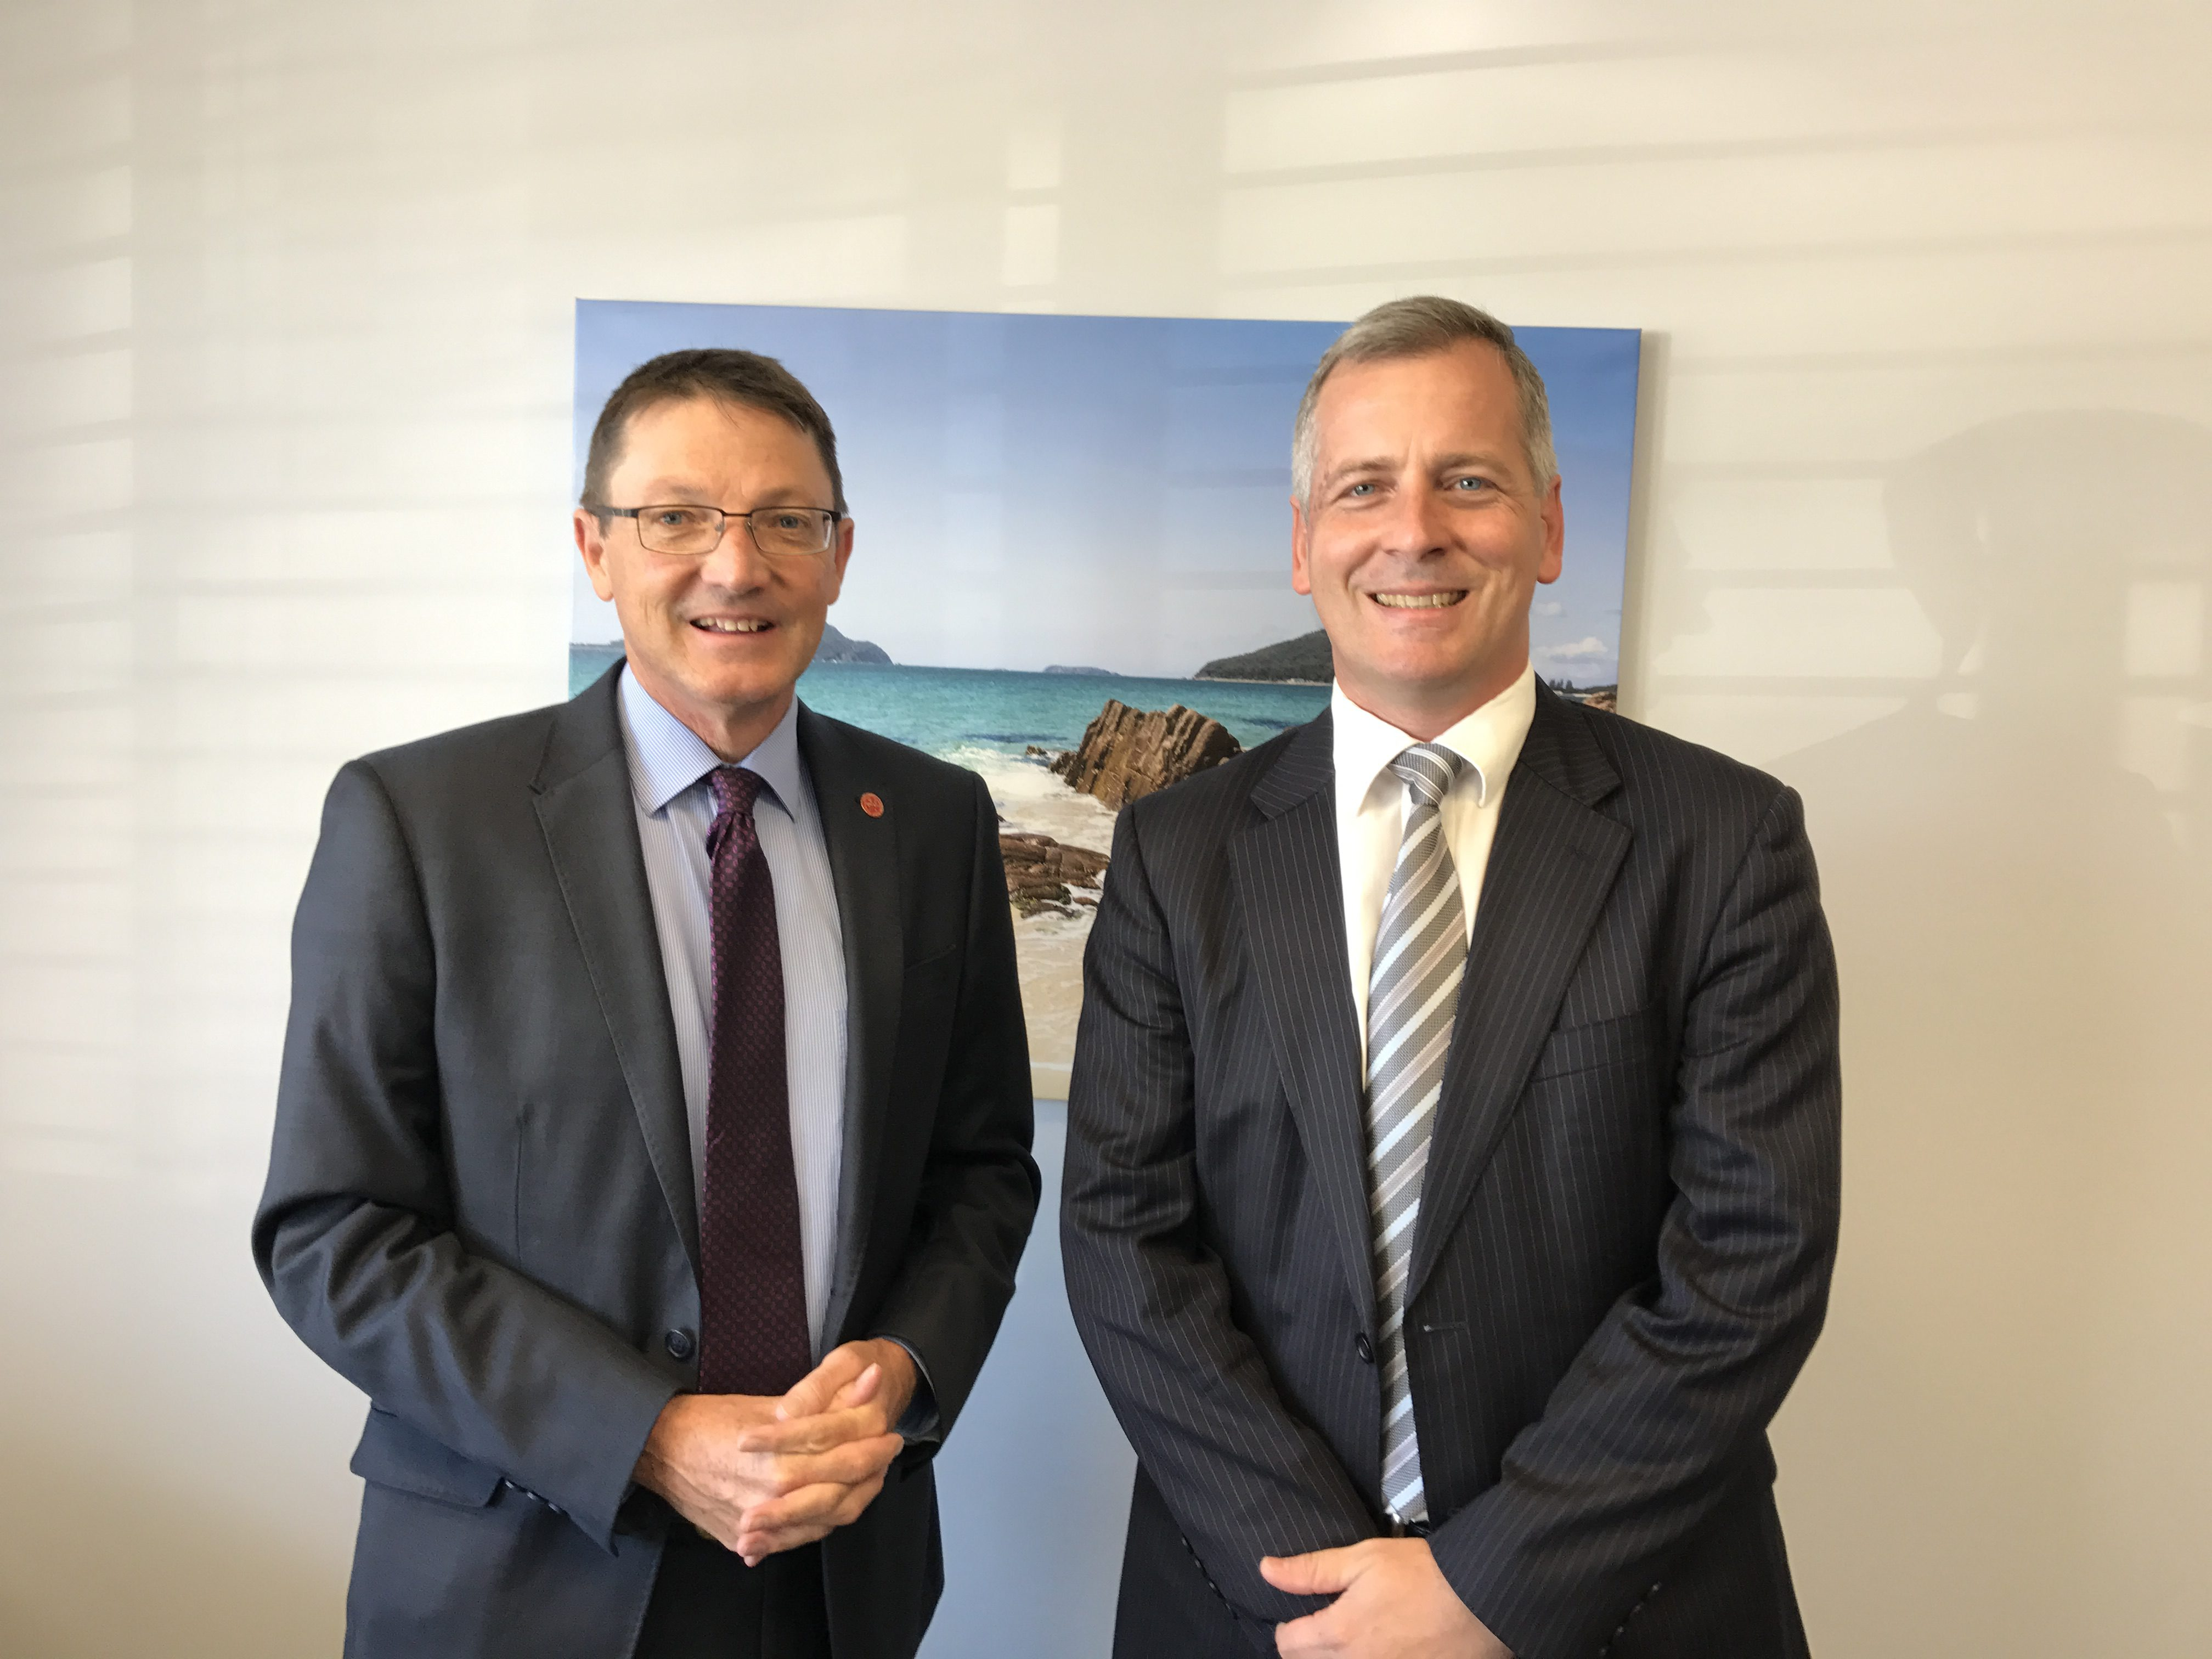 Parliamentary Secretary for the Hunter Scot MacDonald with Principal of St Philip's Christian College Dr Timothy Petterson.